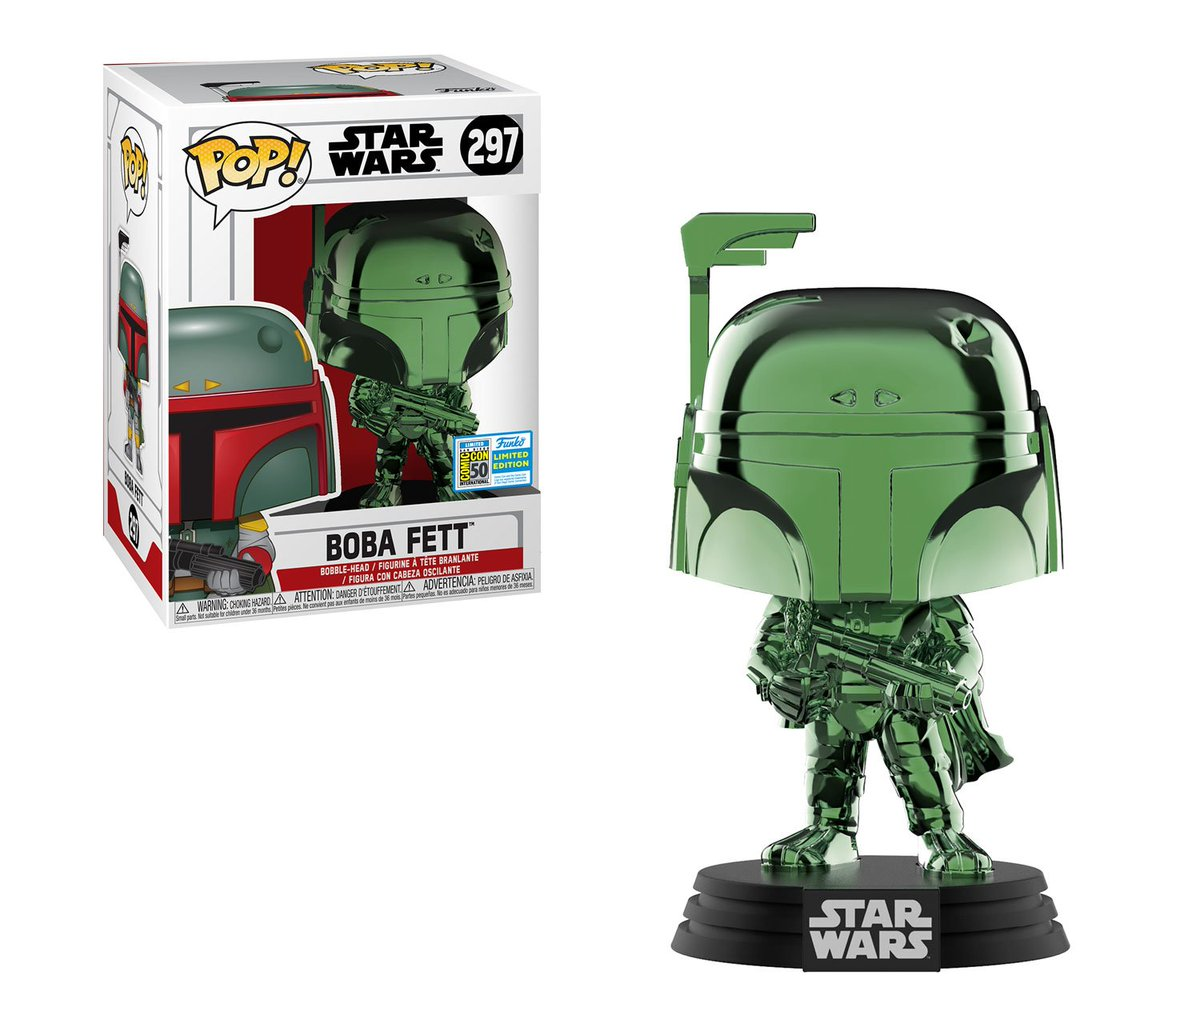 RT & follow @OriginalFunko for a chance to WIN a #SDCC2019 exclusive Green Chrome Boba Fett Pop! #FunkoSDCC #SDCC50